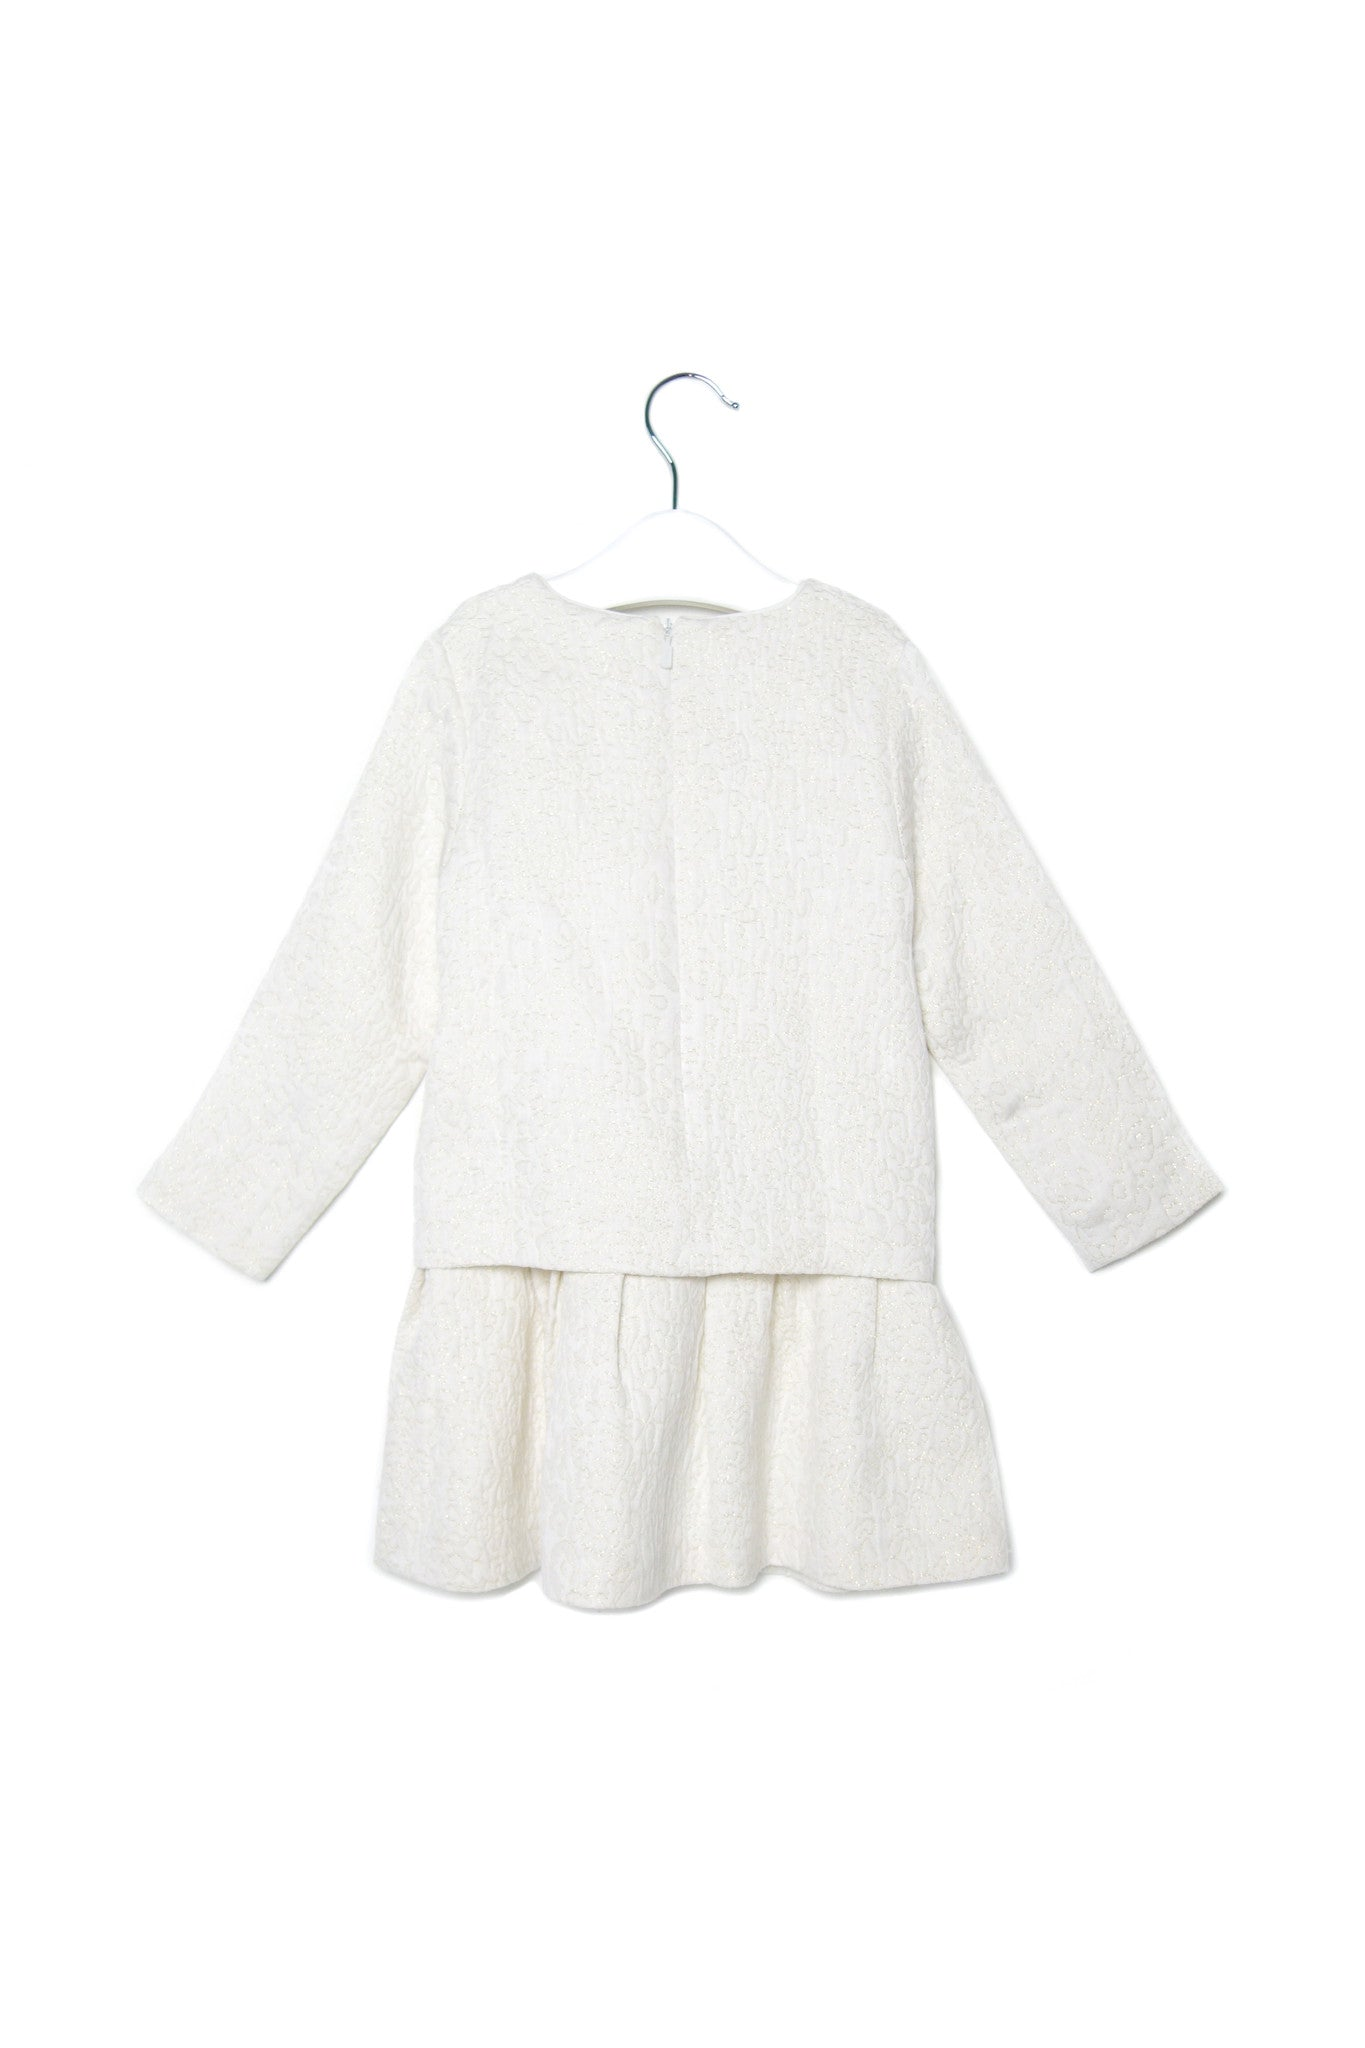 10001929 Chloe Kids~Dress 3T at Retykle